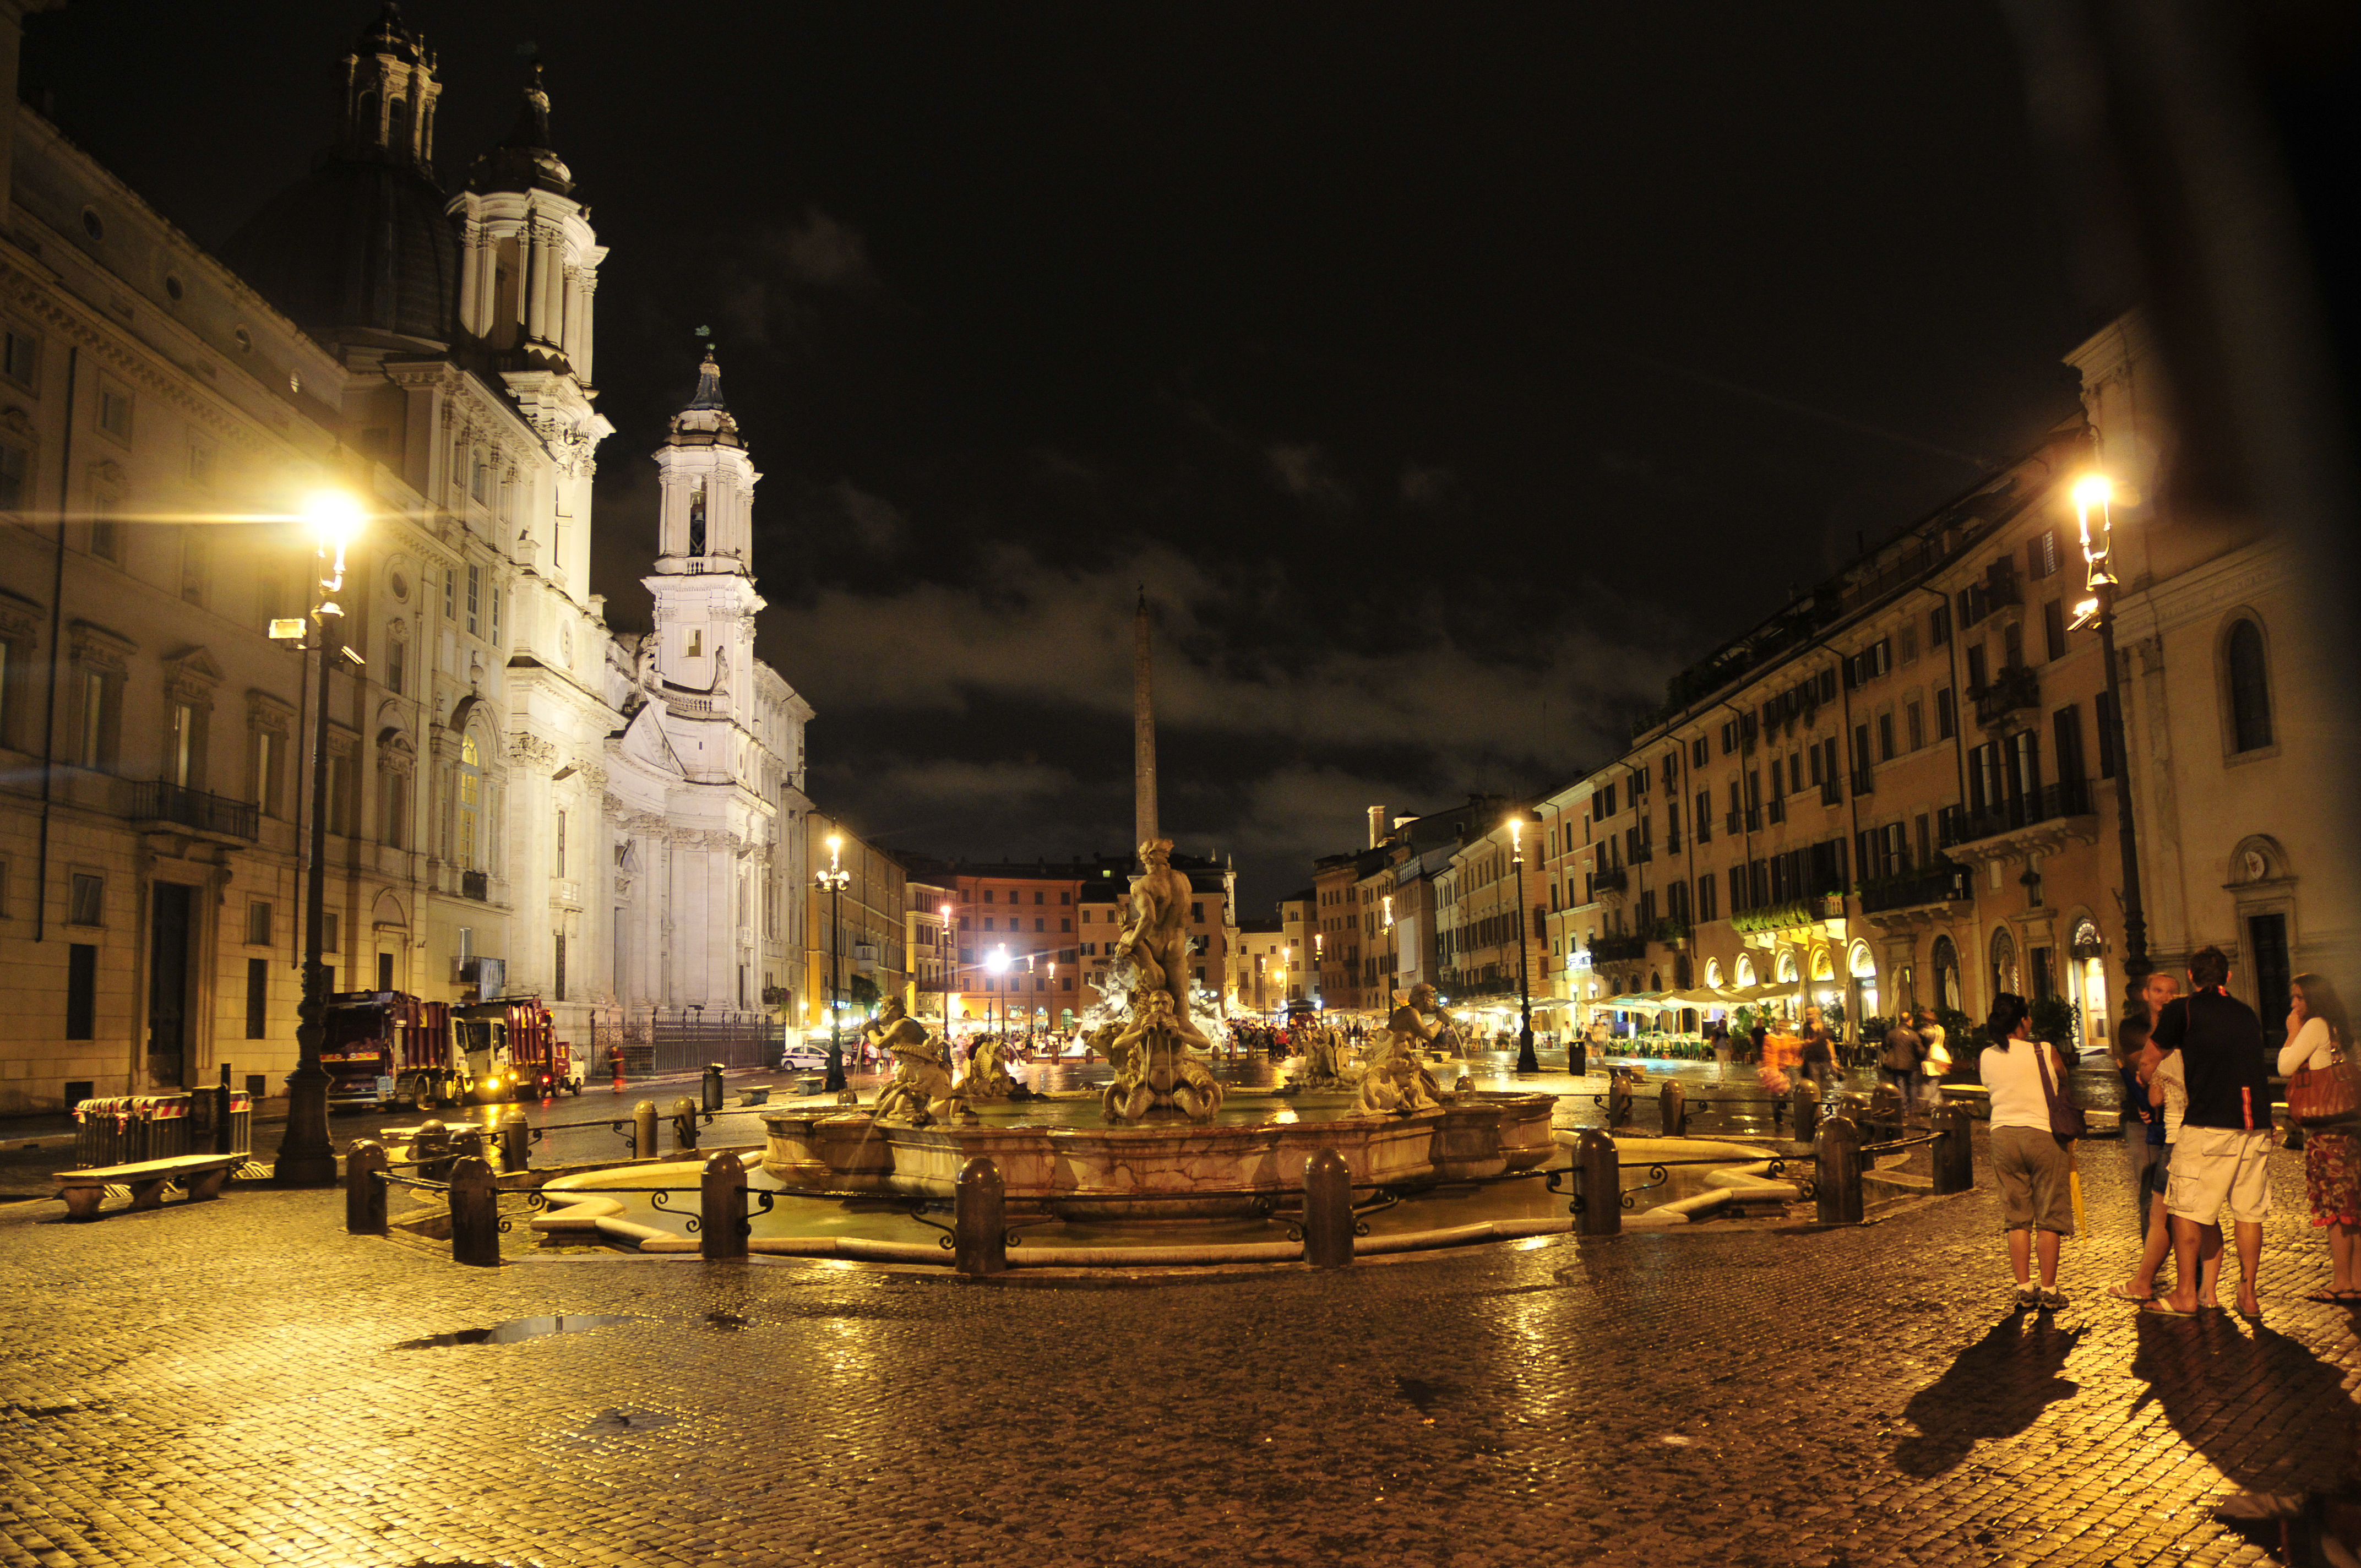 View of the Square at Night